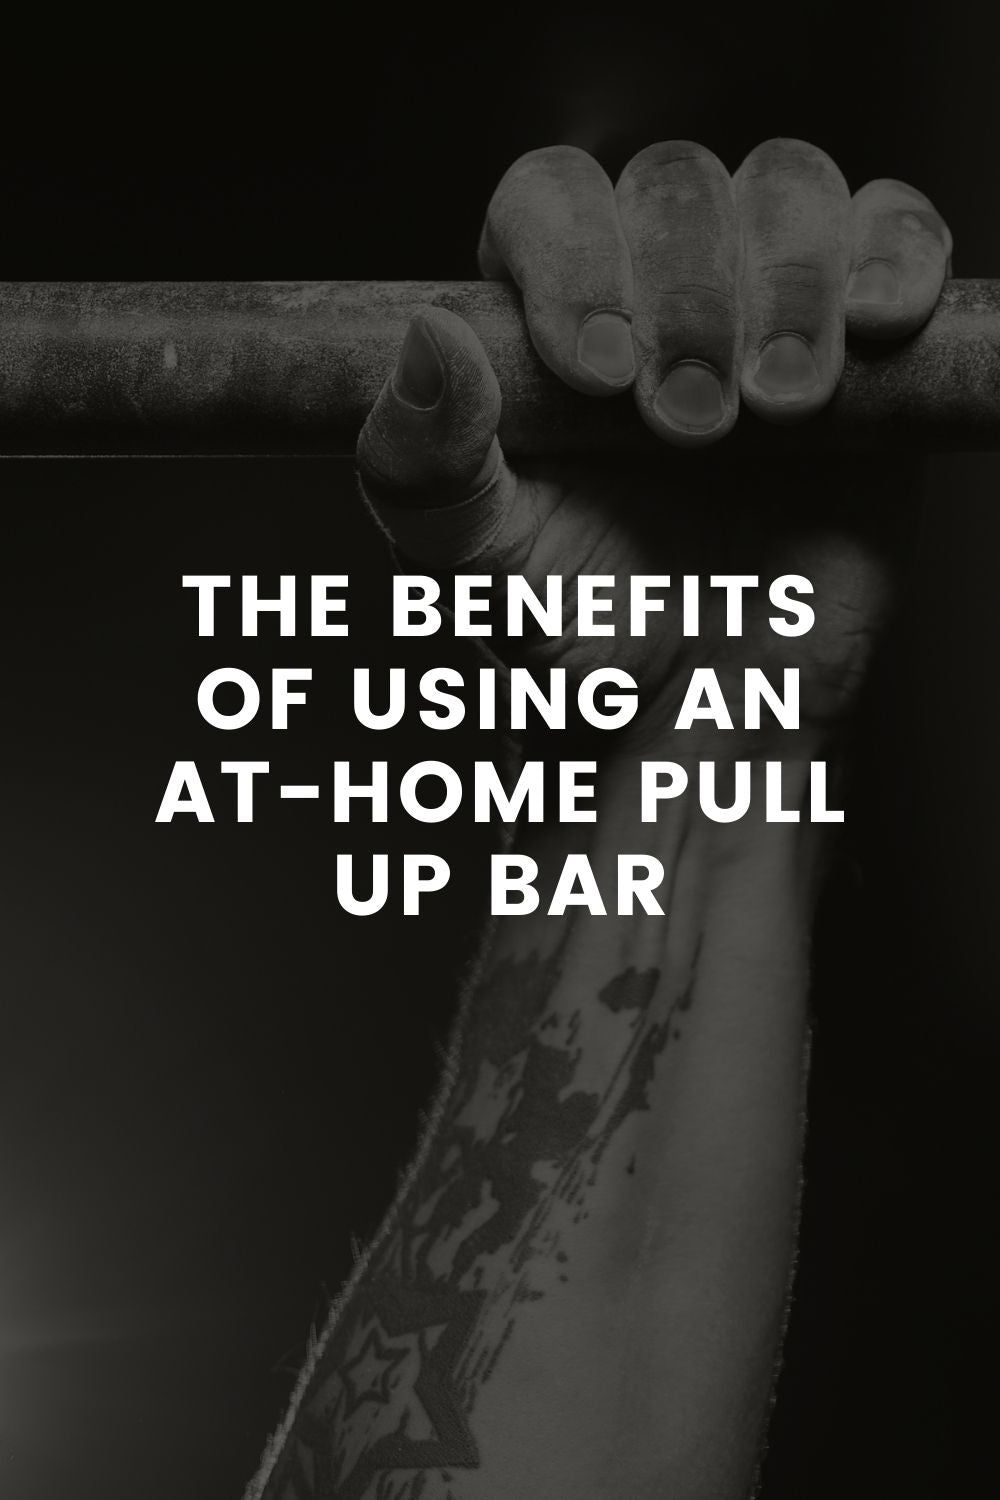 The Benefits of Using An At-Home Pull Up Bar